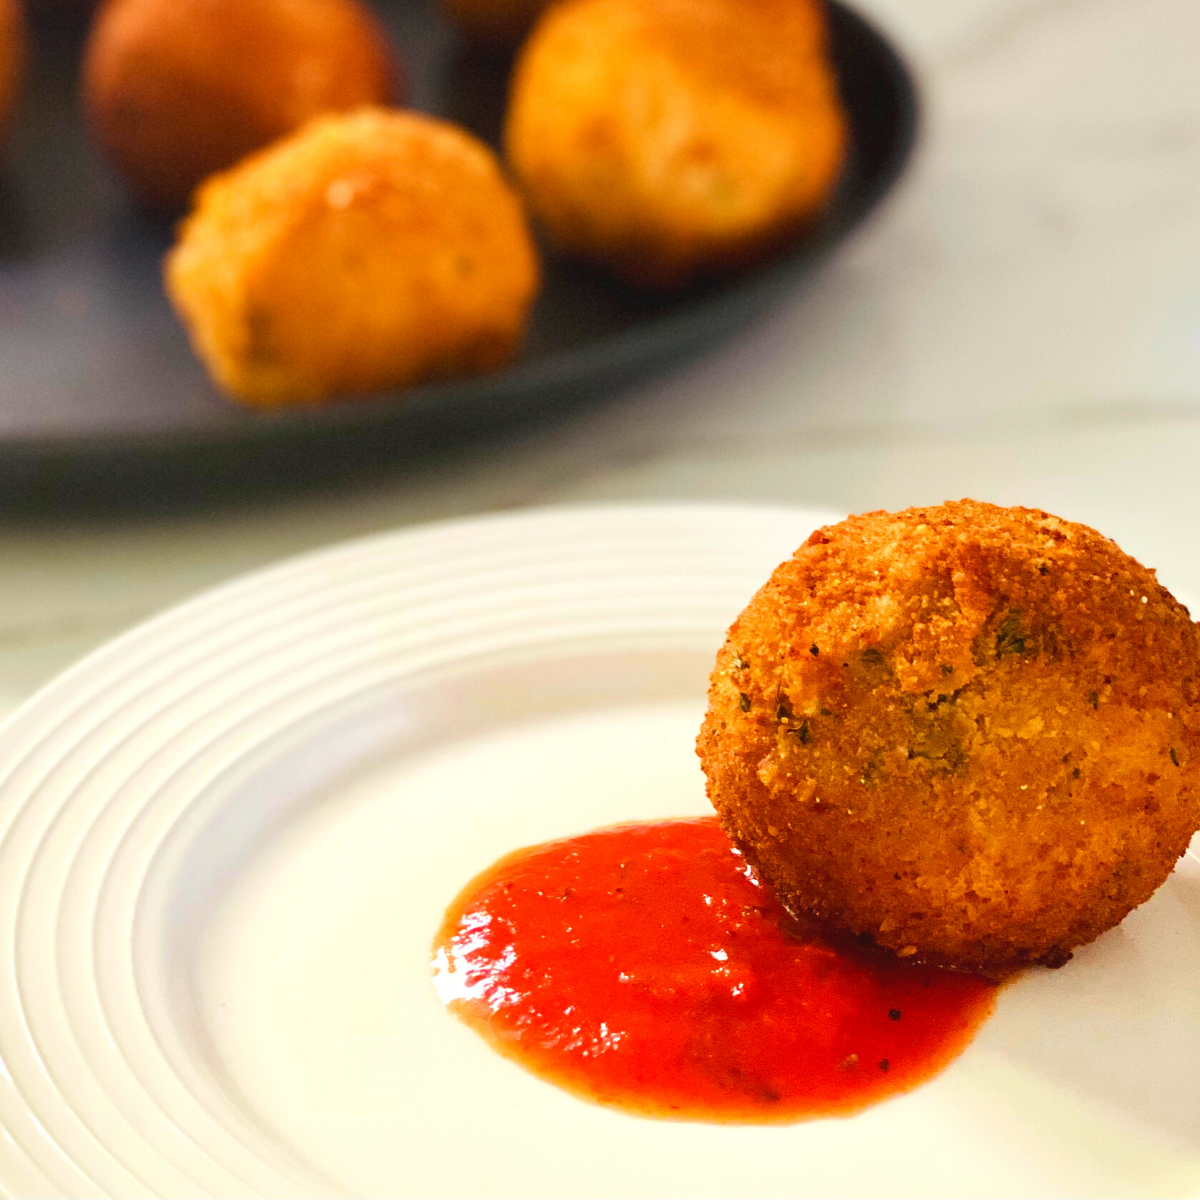 A fried arancini ball on a white plate with a dollop of red marinara sauce in the center.